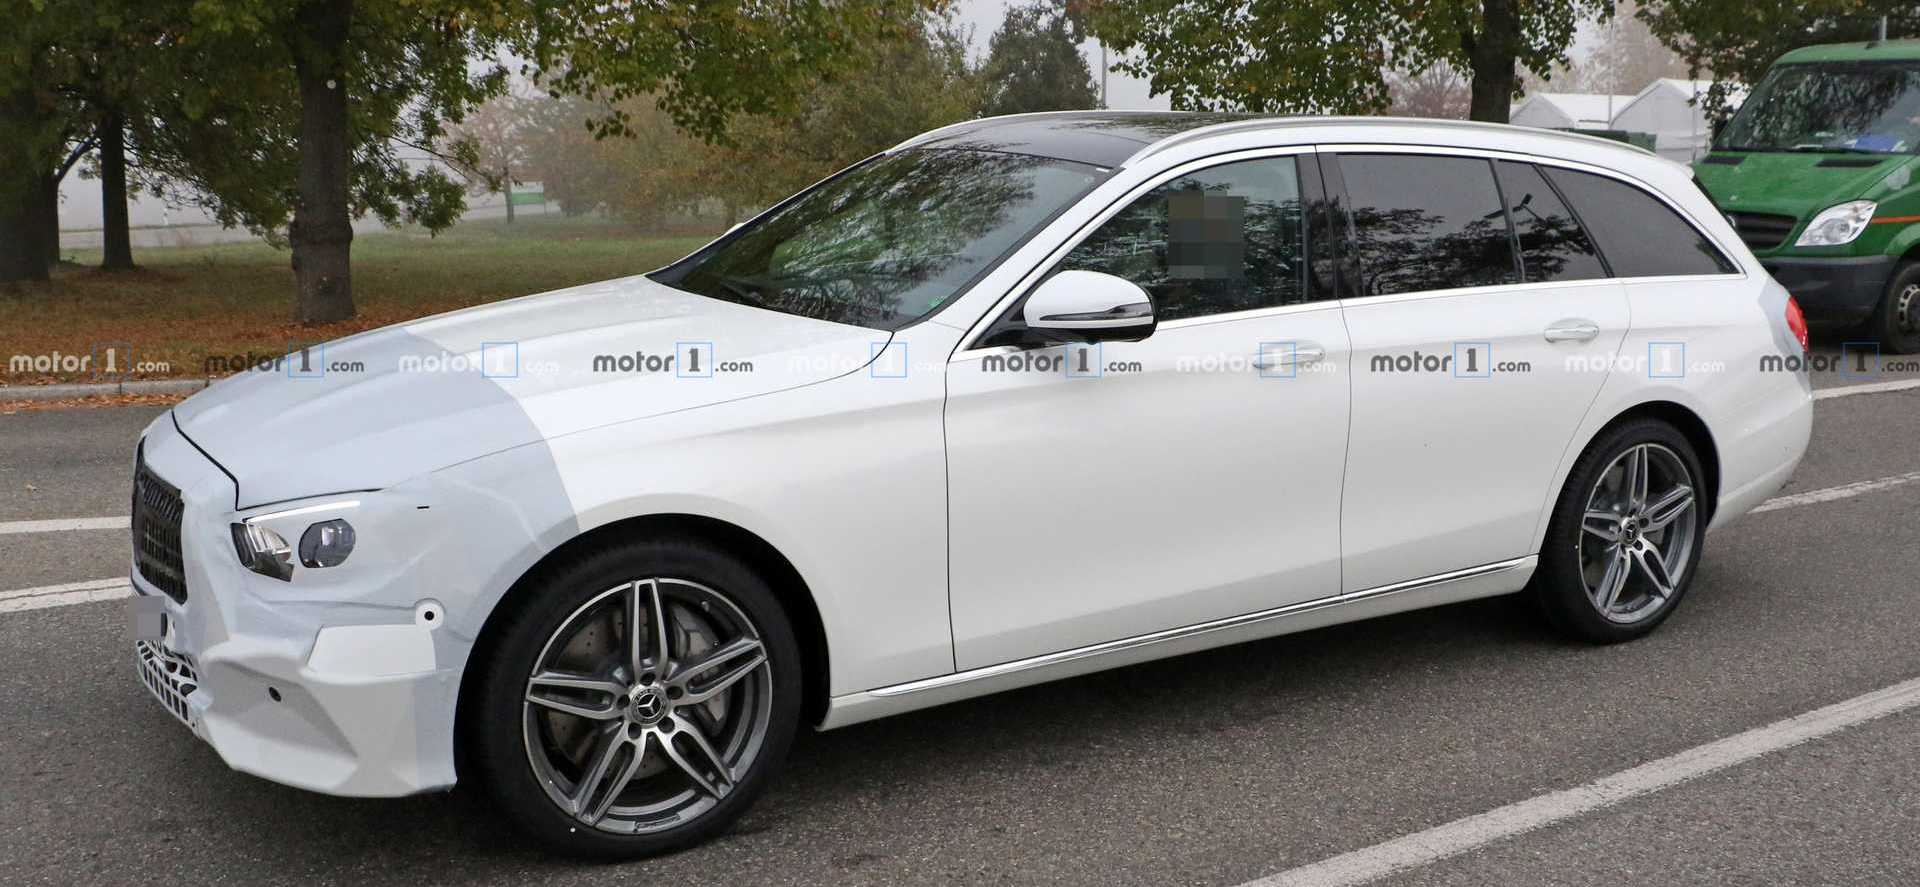 2020 Mercedes E-Class Wagon Spied Dressed In White